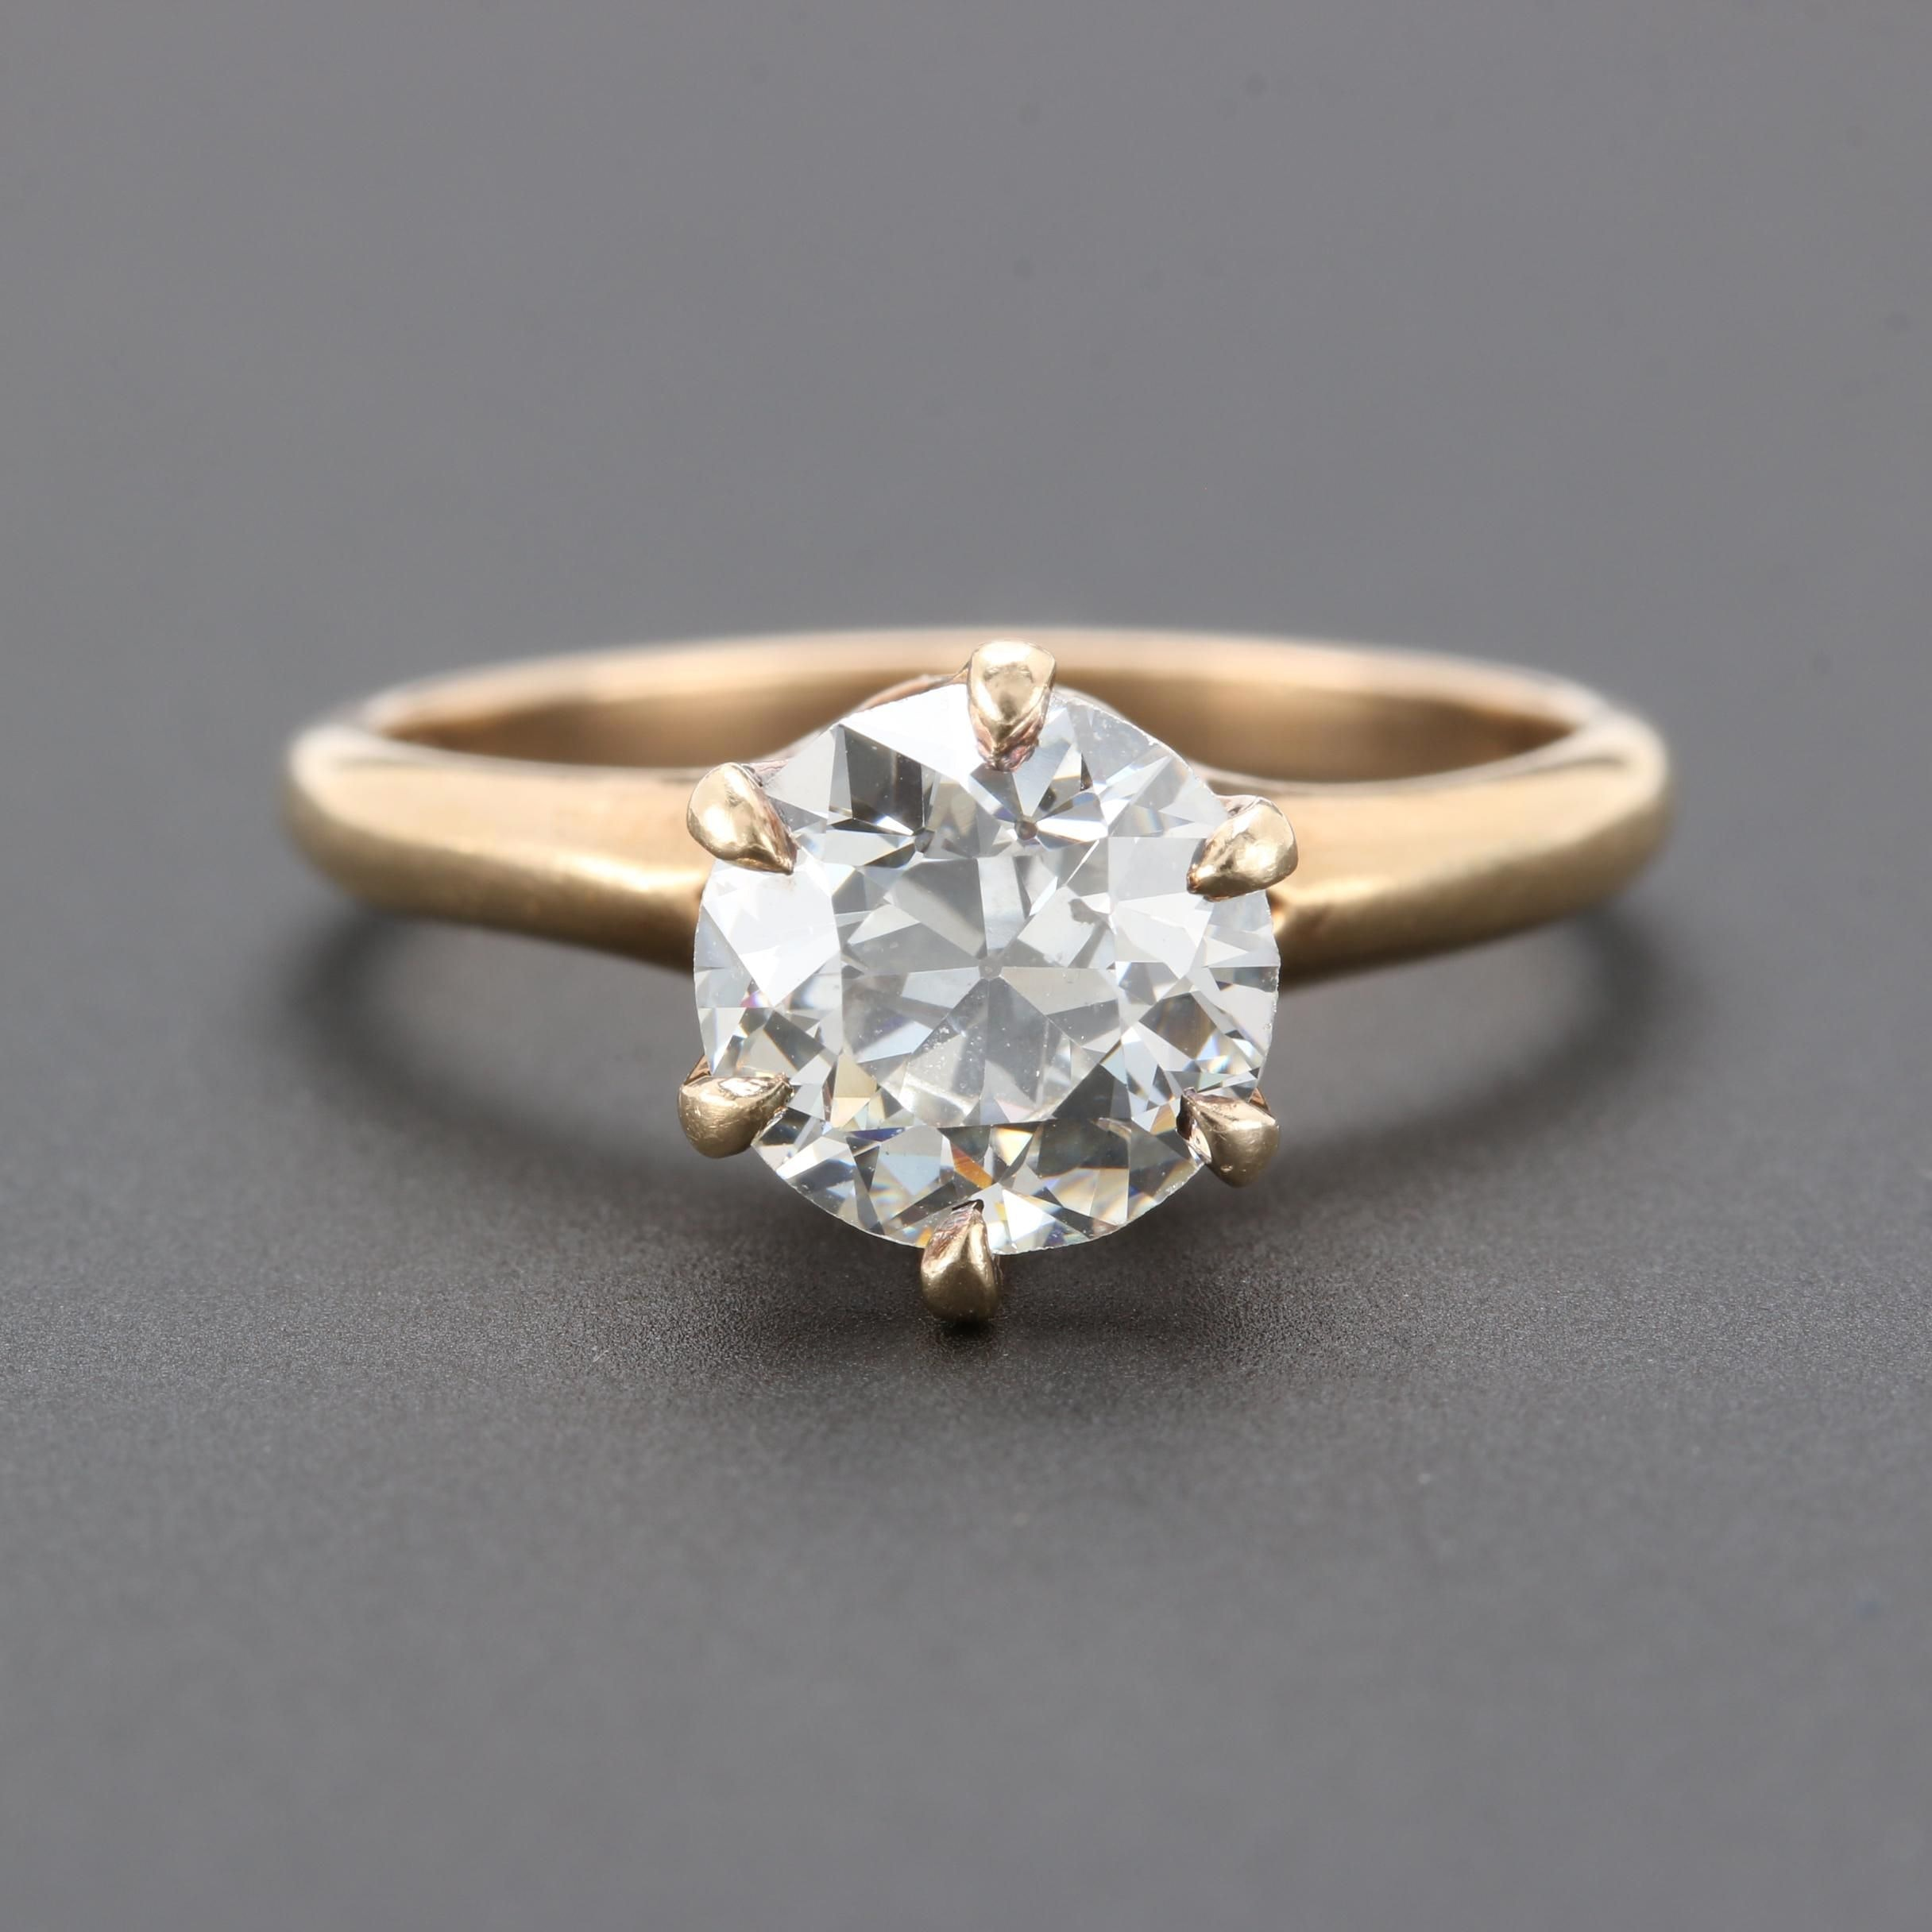 14K Yellow Gold 1.44 CT Diamond Solitaire Ring